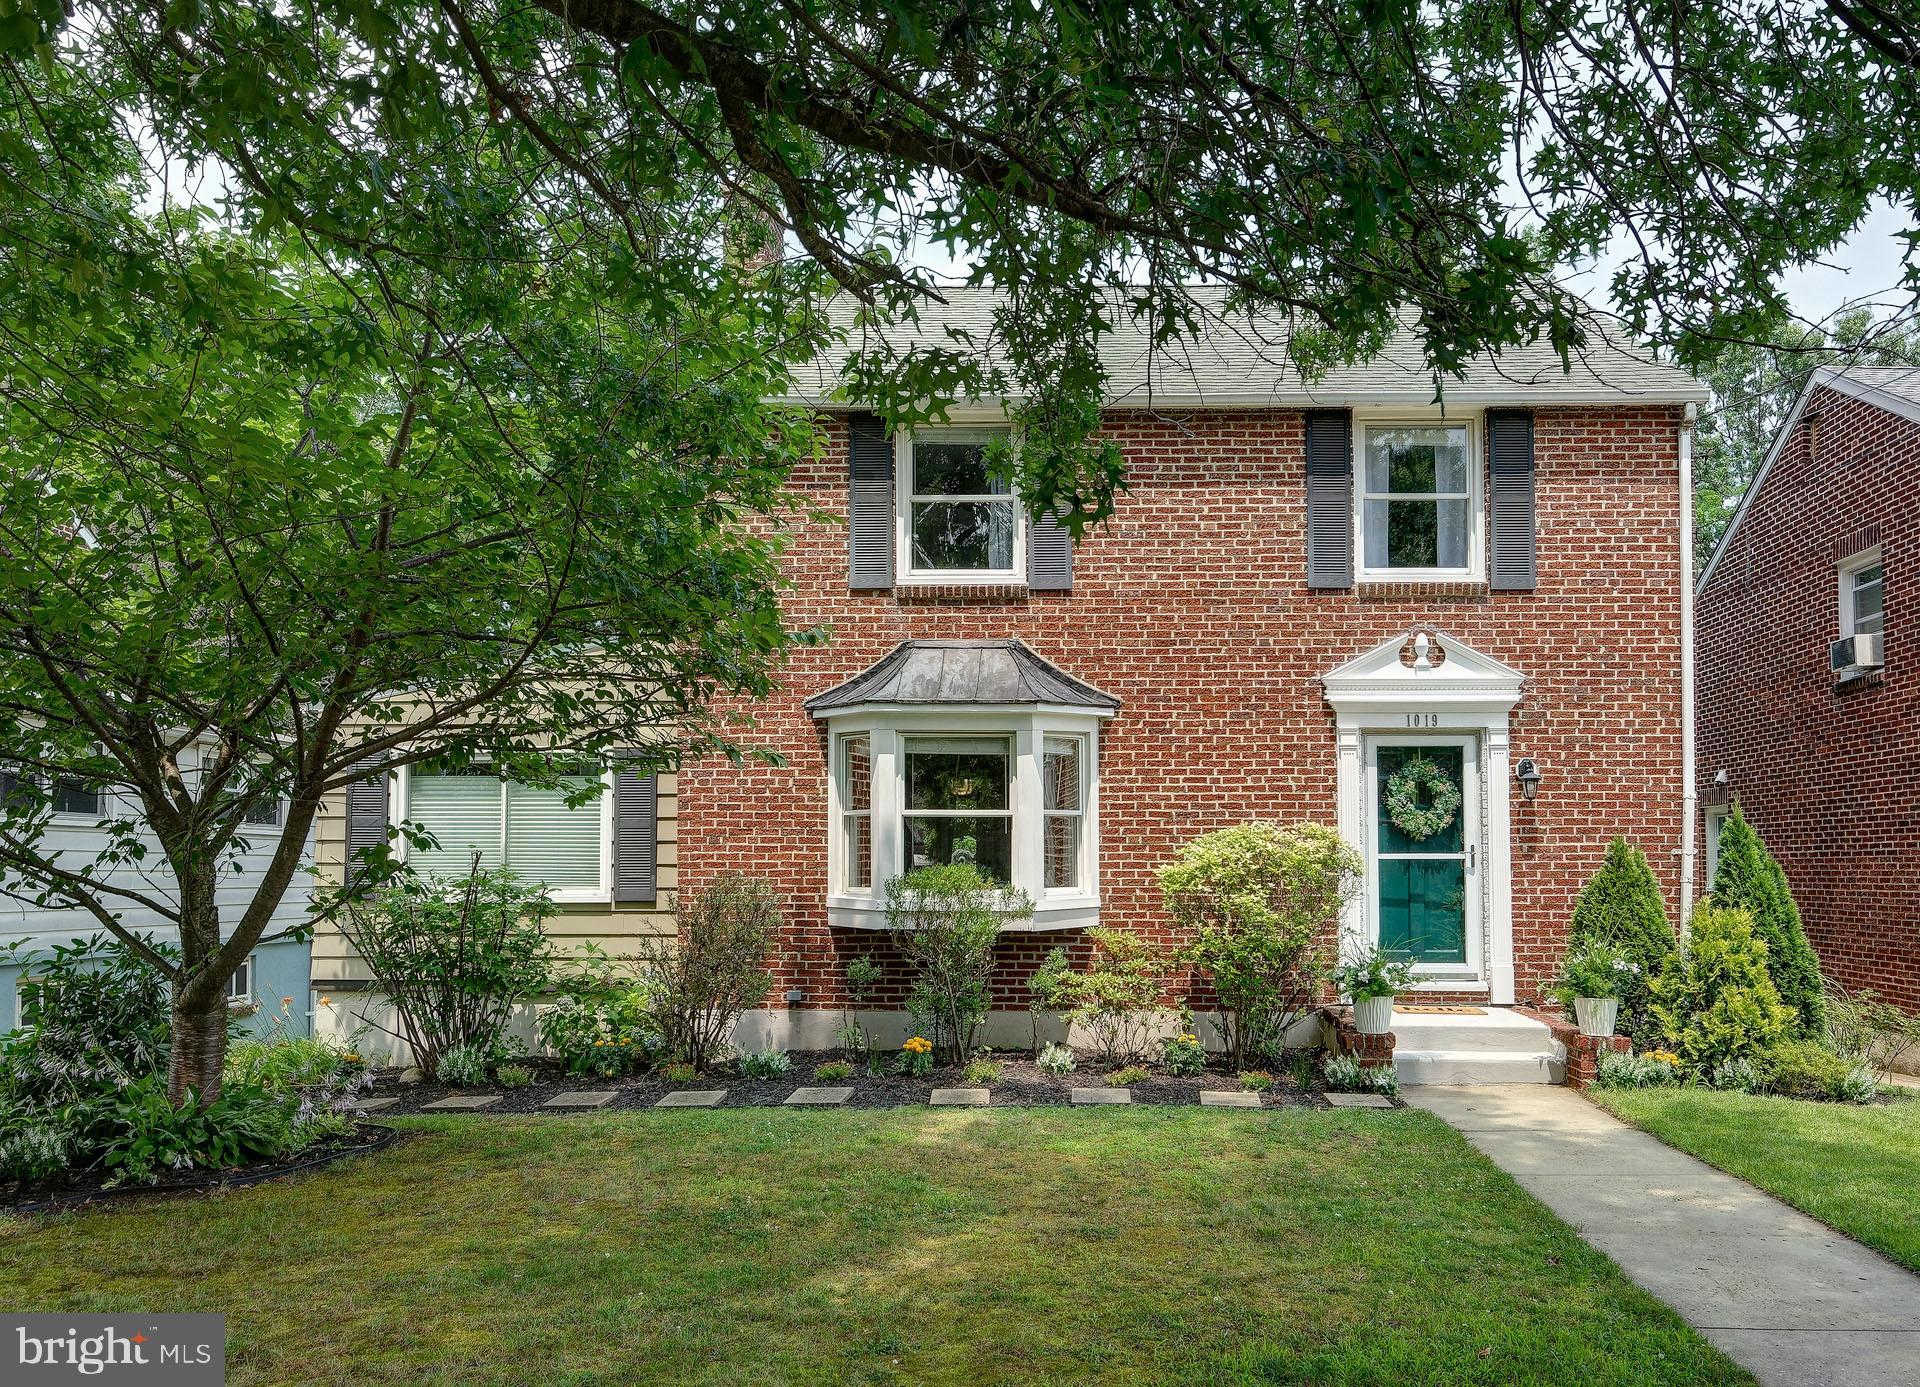 1019 Emerald Avenue, Haddon Township, NJ 08107 now has a new price of $339,900!